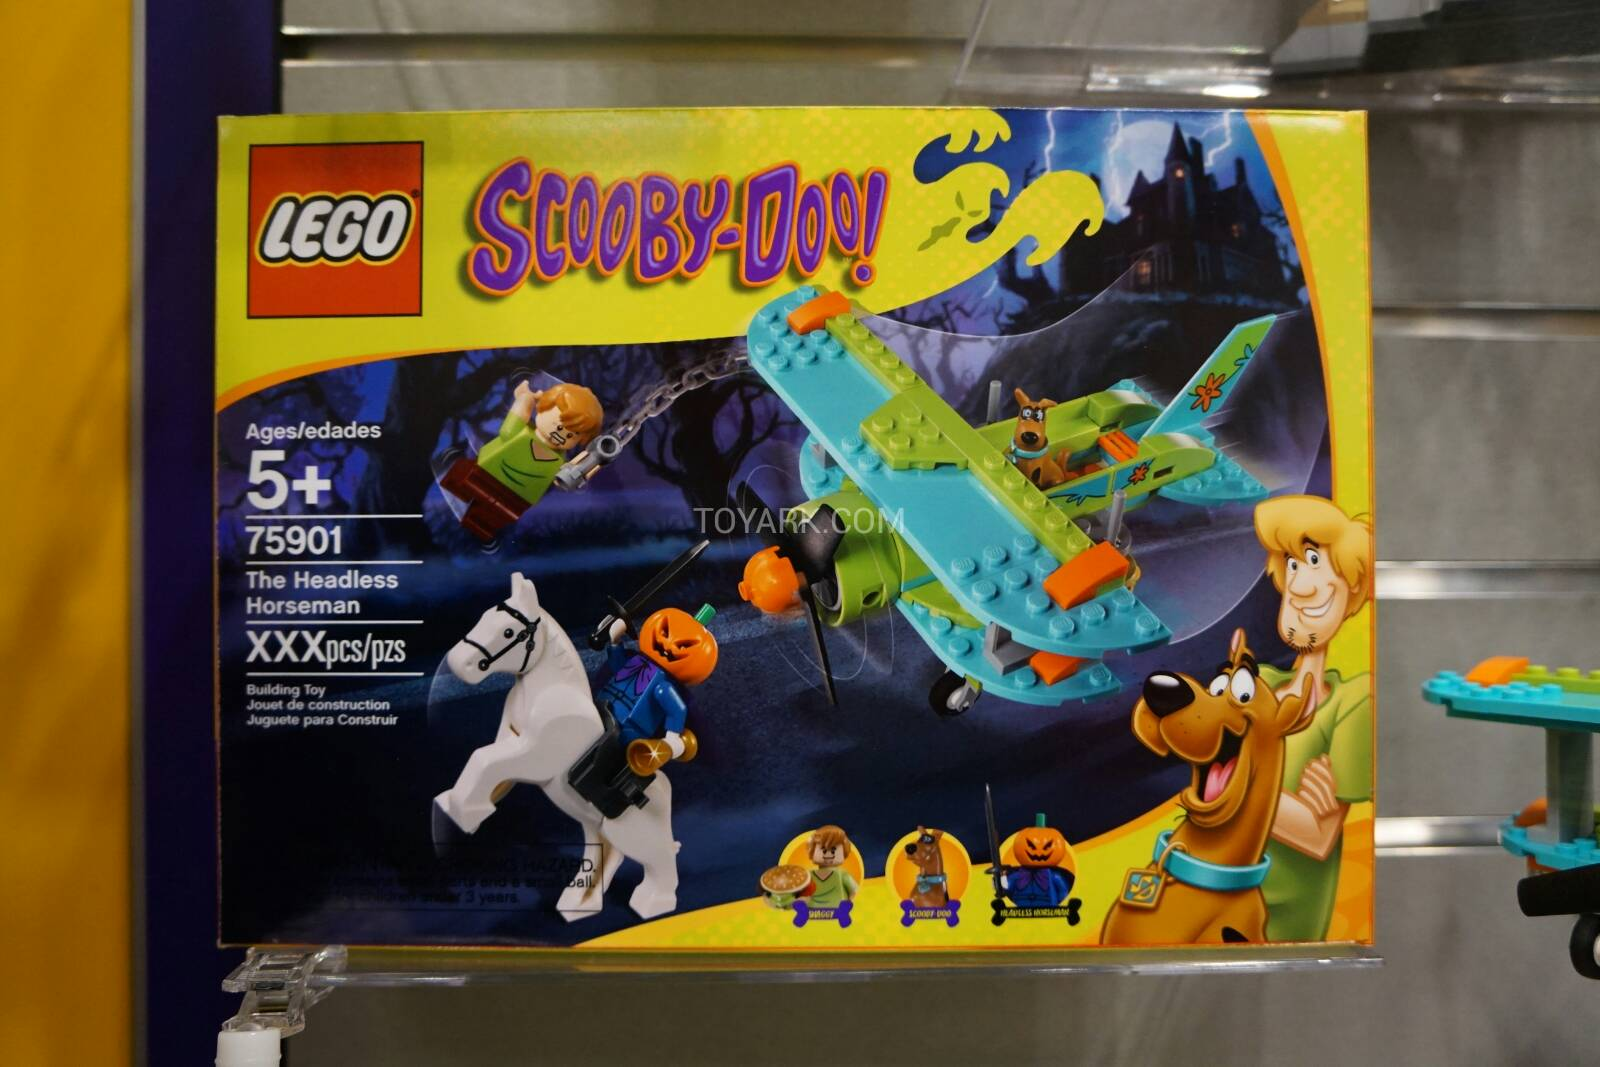 Toy-Fair-2015-LEGO-Scooby-001.jpg